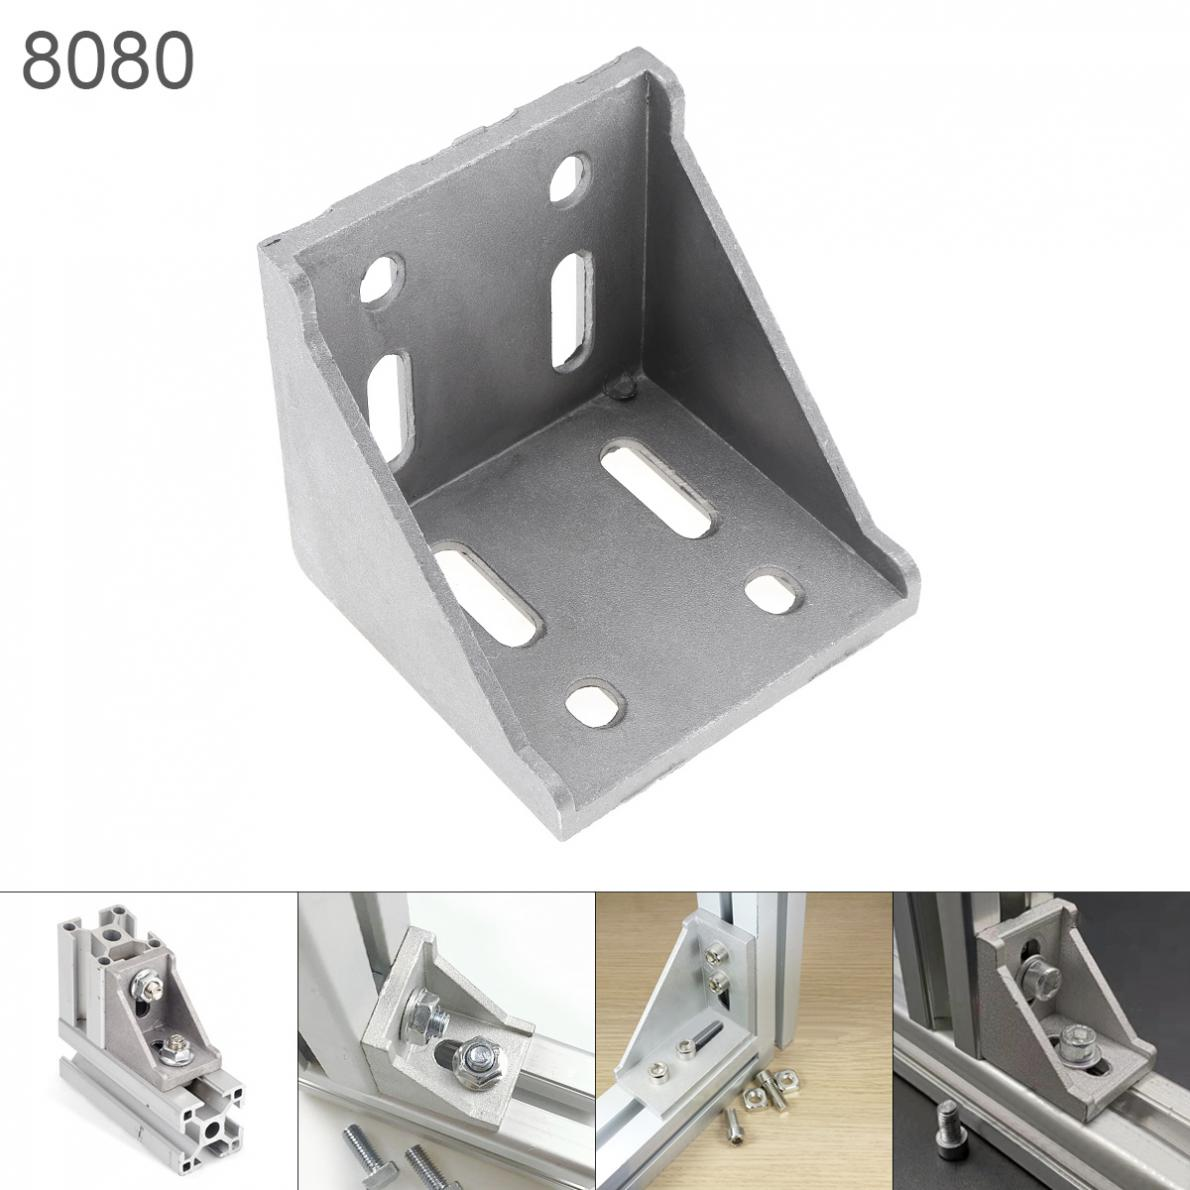 Gray <font><b>8080</b></font> Aluminum Corner L Shape Right Angle Support Connector Extrusion Industrial Aluminum <font><b>Profile</b></font> image